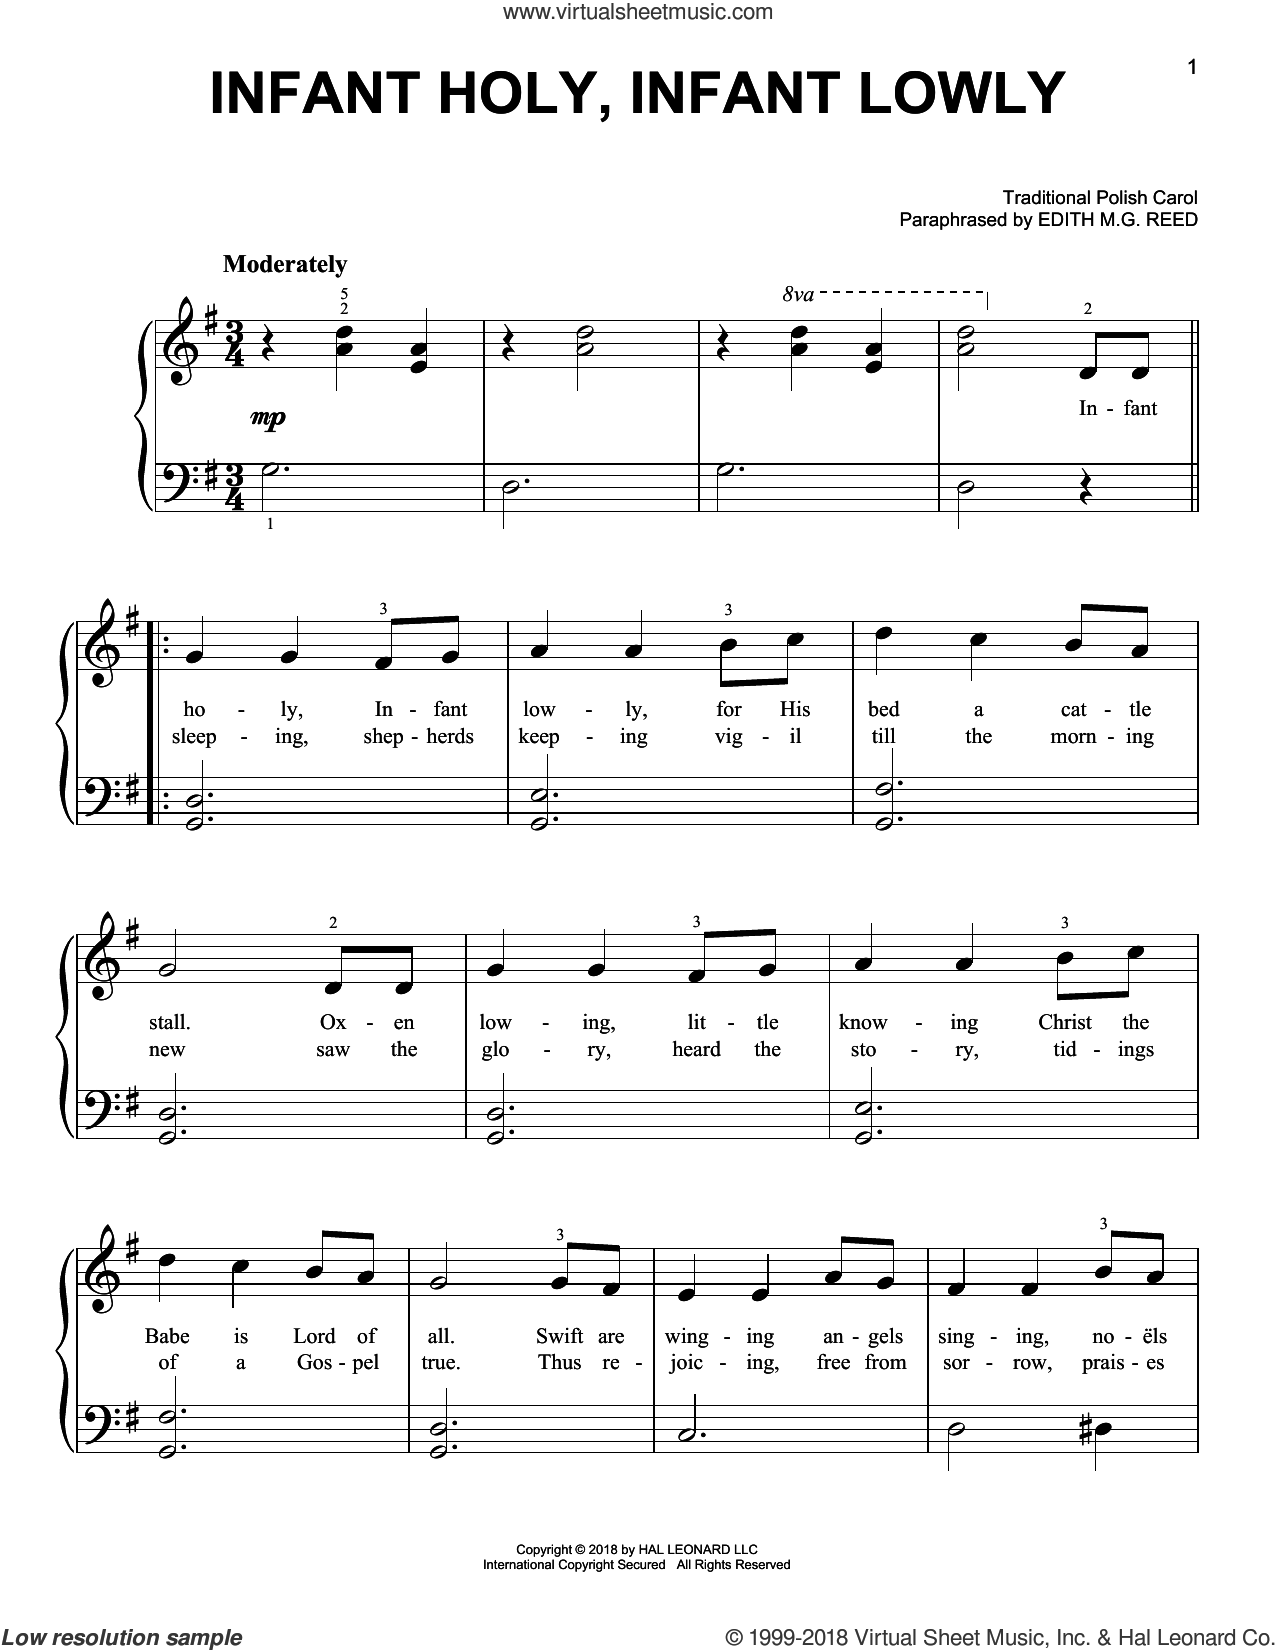 Infant Holy, Infant Lowly sheet music for piano solo by Edith M.G. Reed and Miscellaneous, beginner skill level